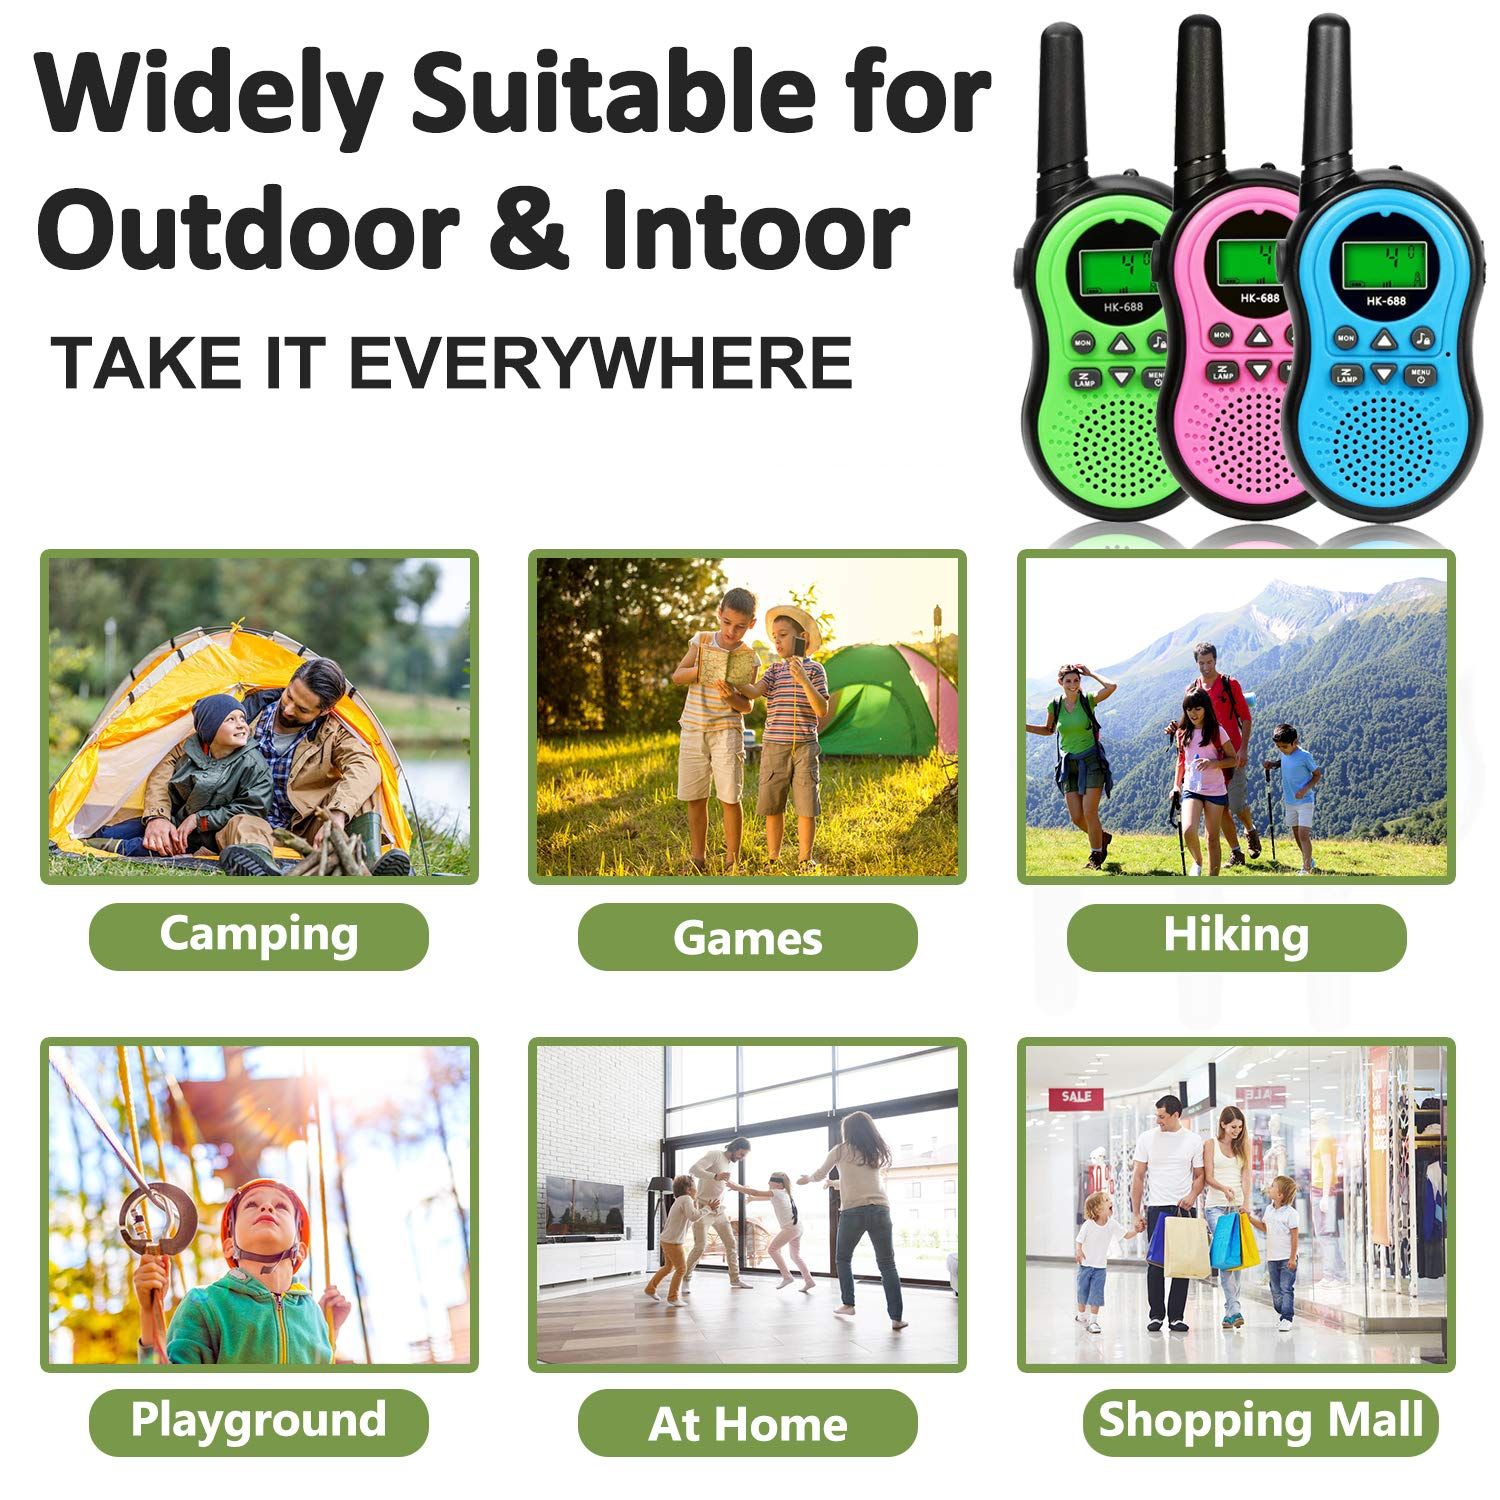 6 Pack Kids Walkie Talkies Outdoor Indoor Toys for Boy Girl 22 Channels Two Way Range Up to 3 Miles Flashlight FRS Radio Handheld Walkie Talkie Adventure Camping Game Back to School Birthday Best Gift by Camlinbo (Image #6)